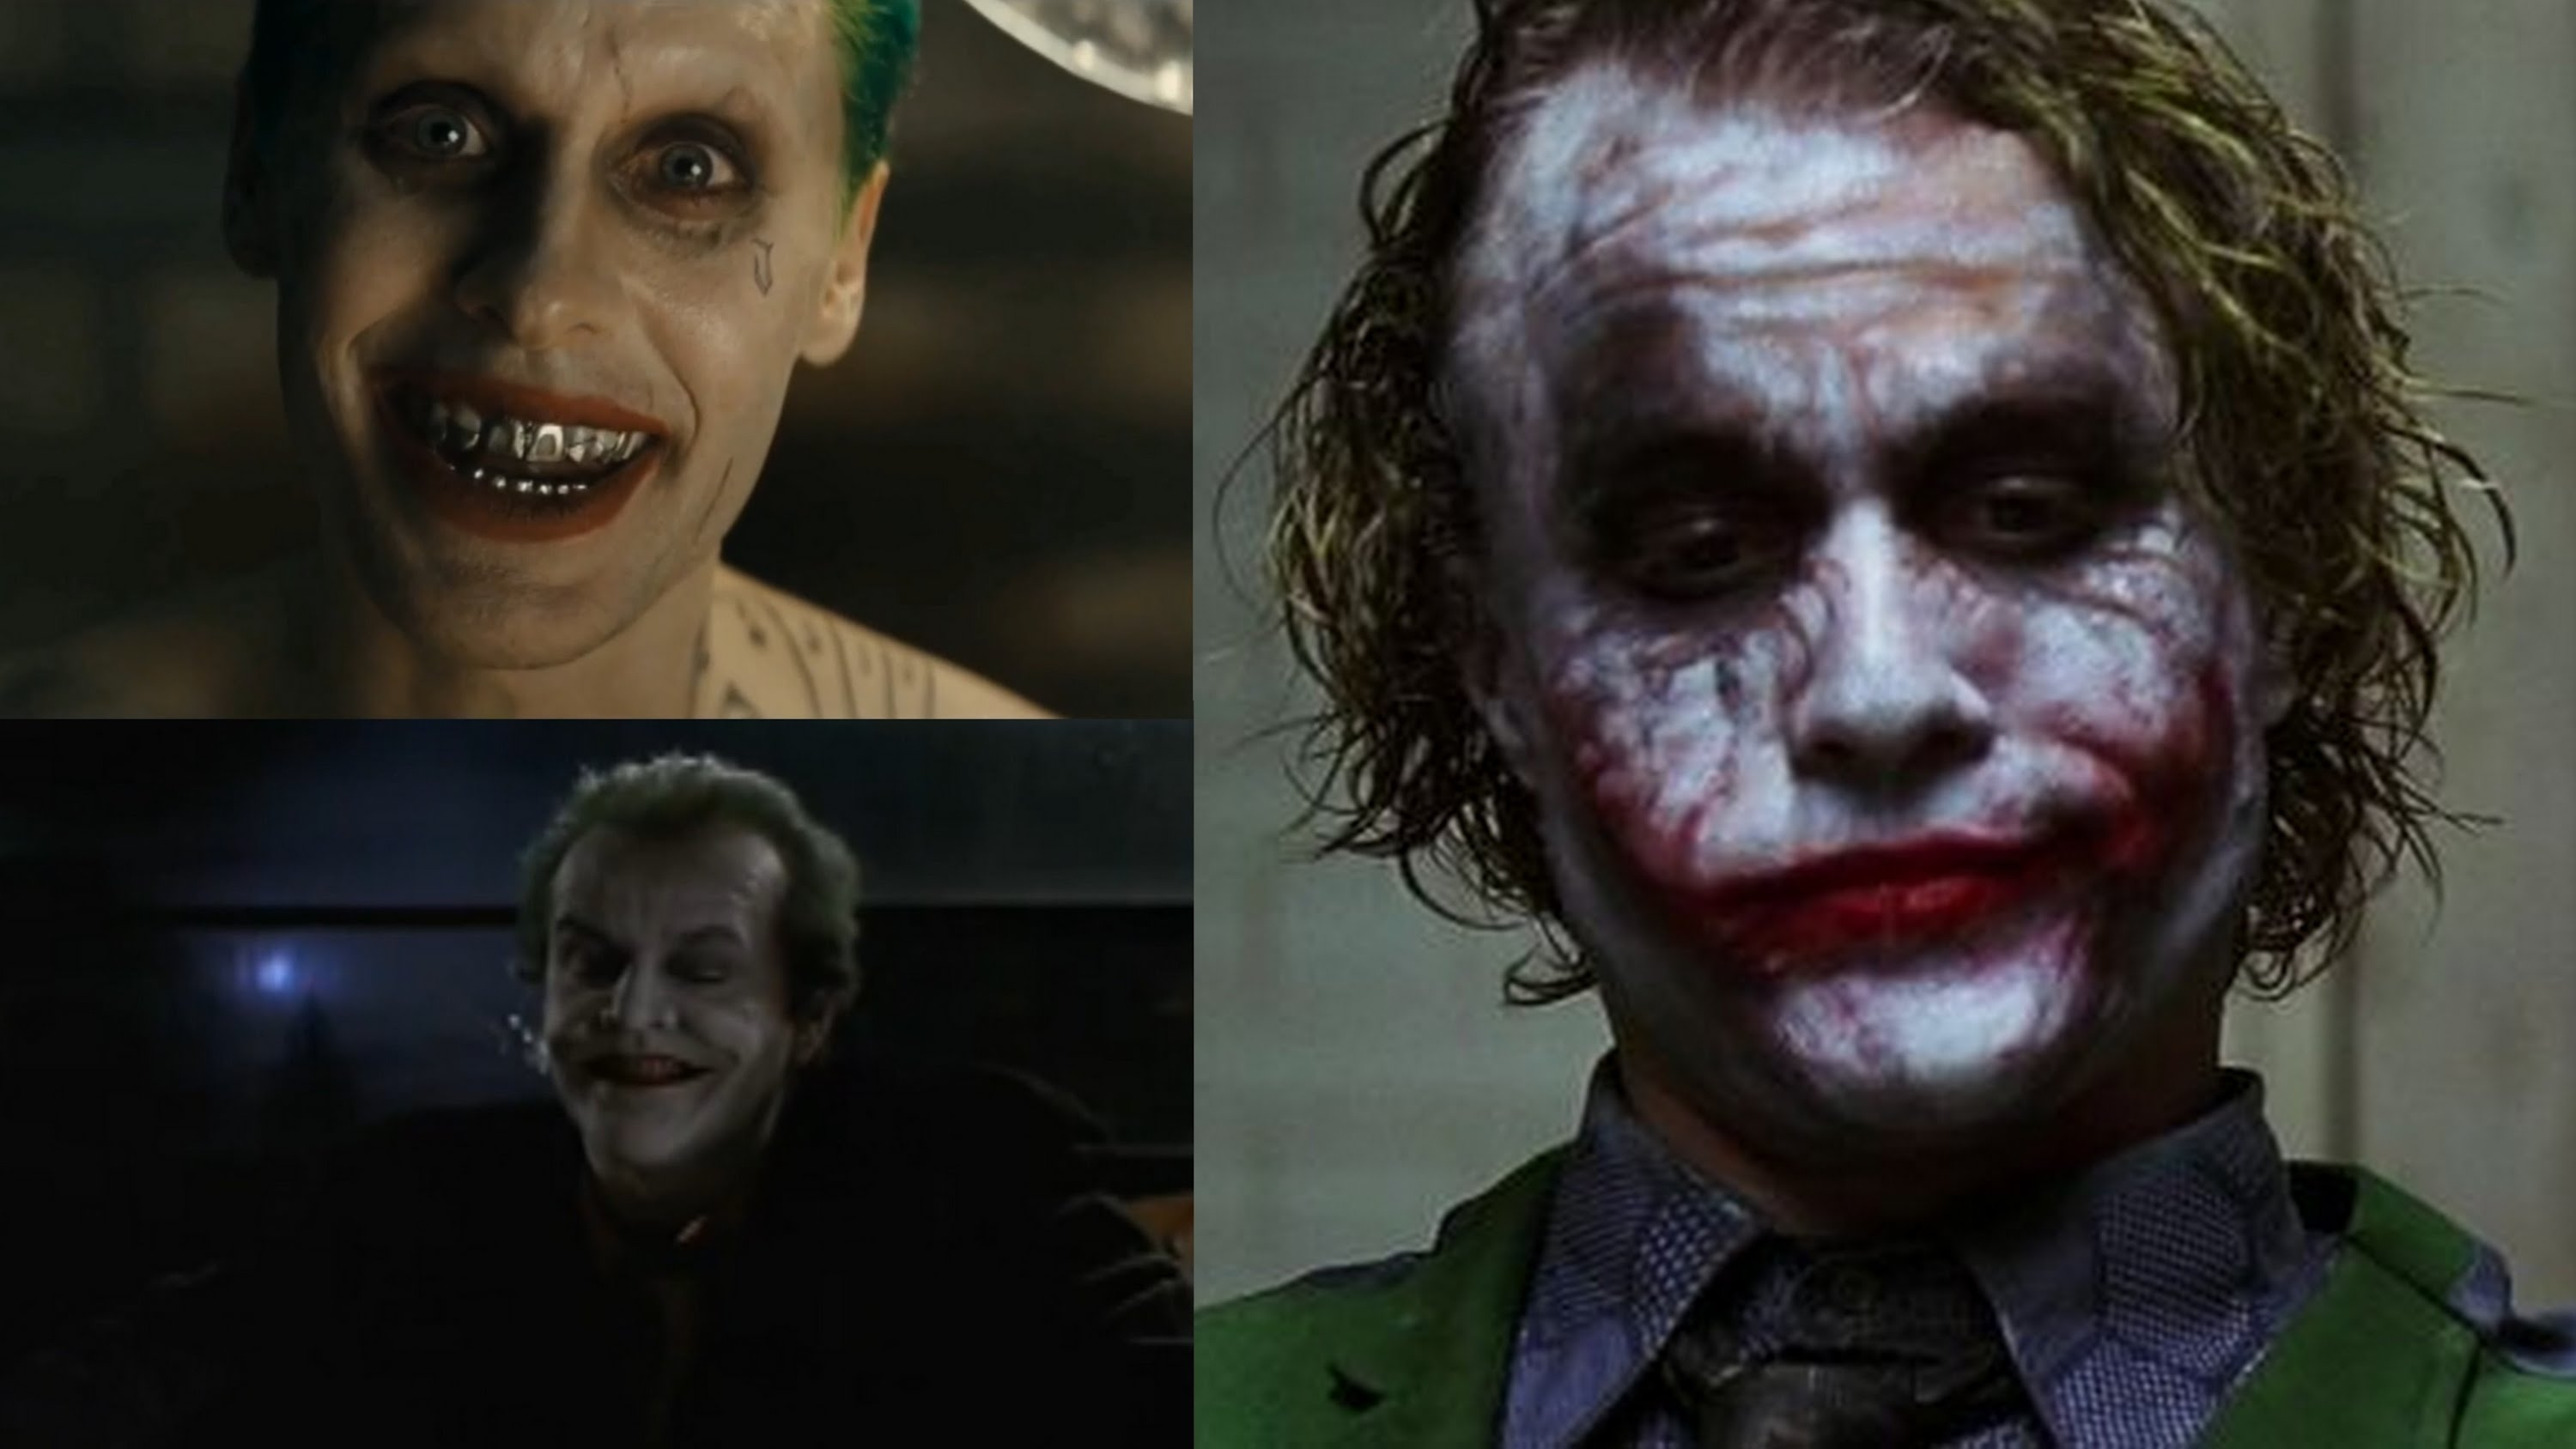 the joker voice - jared leto vs heath ledger vs jack nicholson - youtube